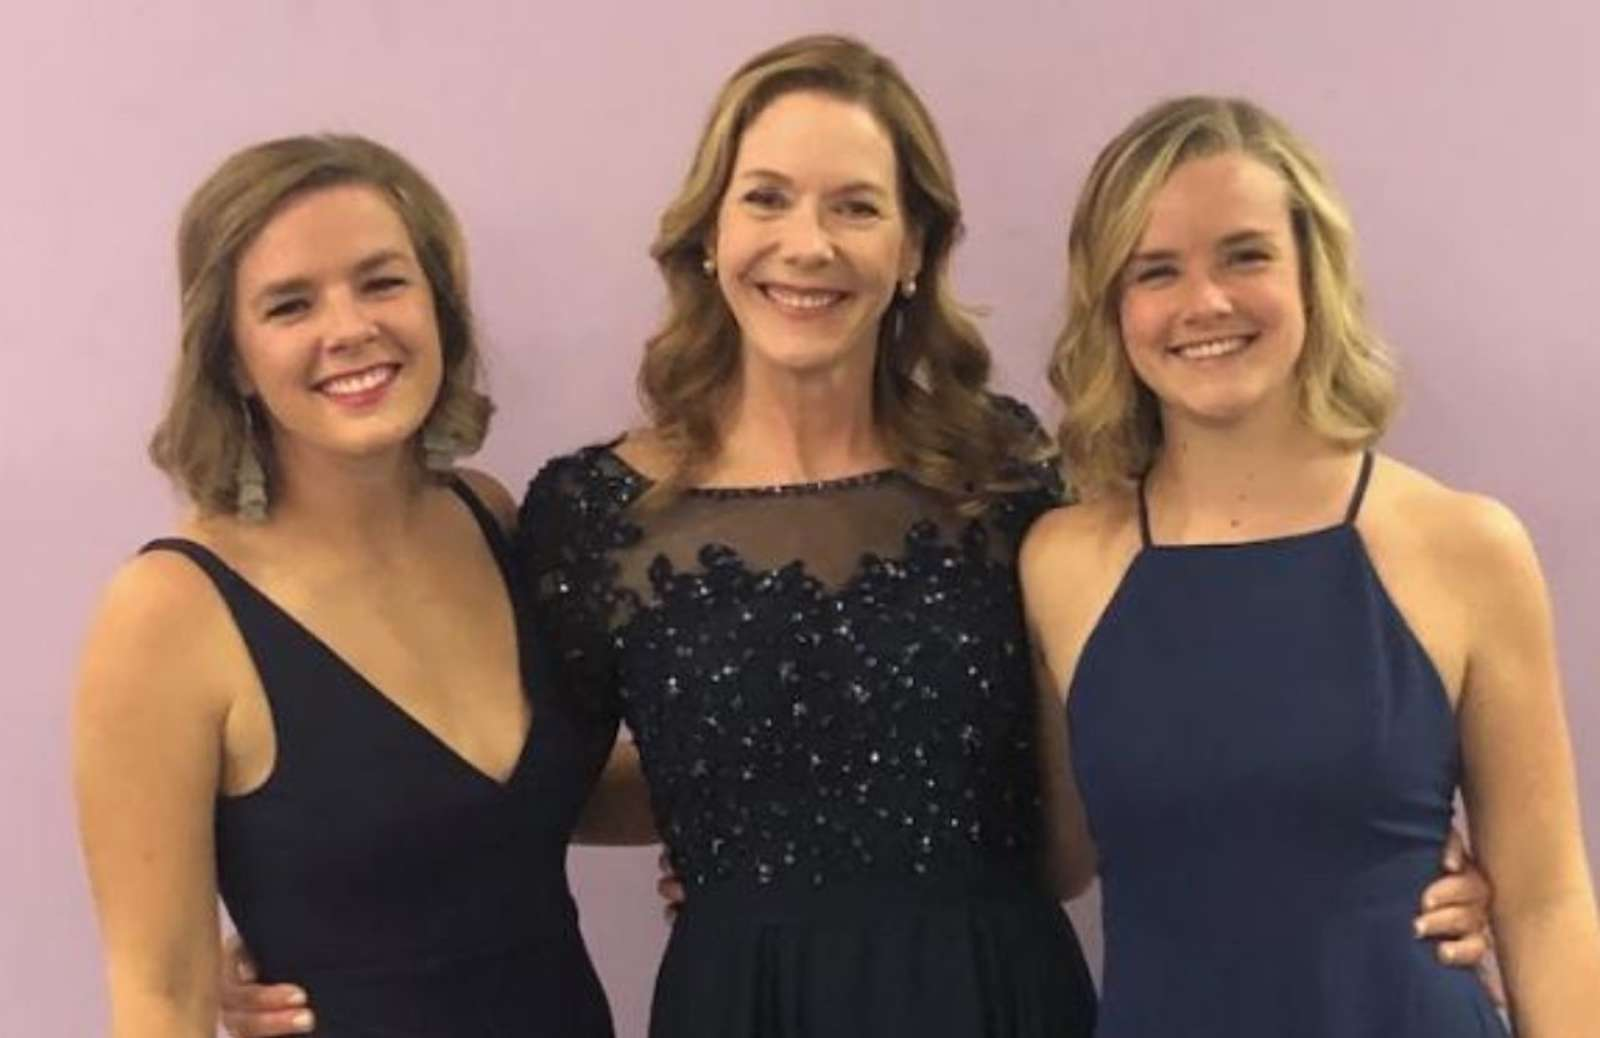 iRelaunch team member Jennifer Howland standing with two daughters